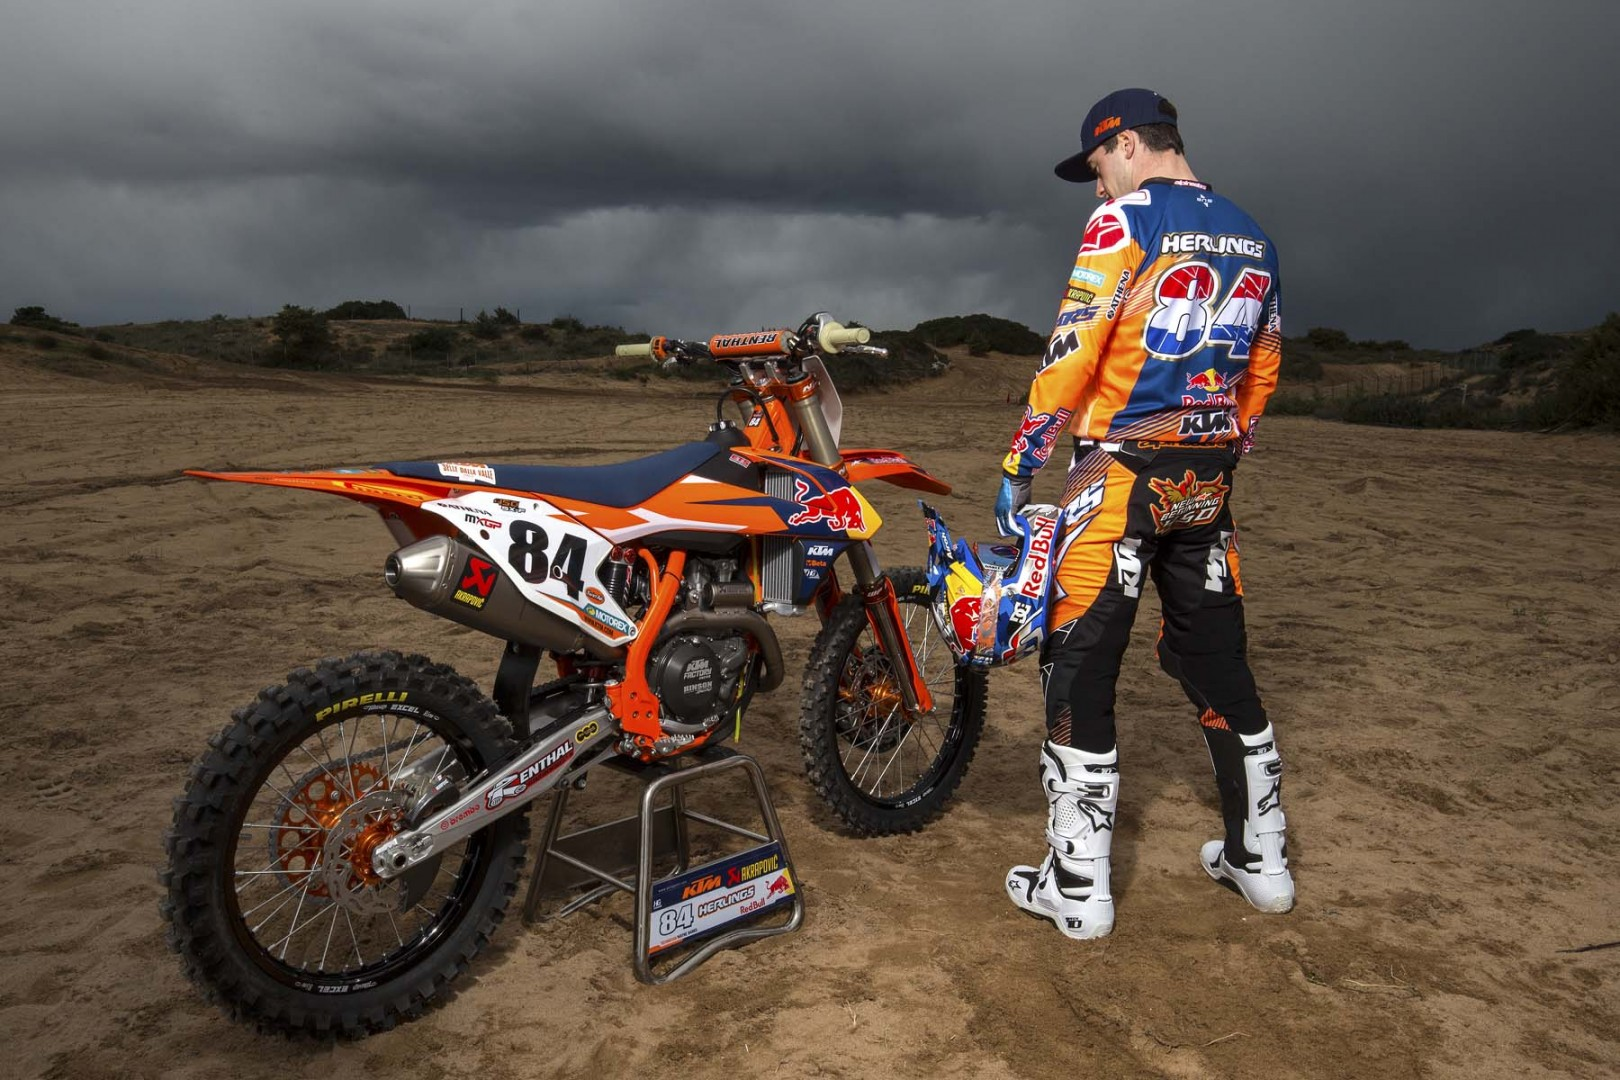 Home - Jeffrey Herlings #84 | Official website